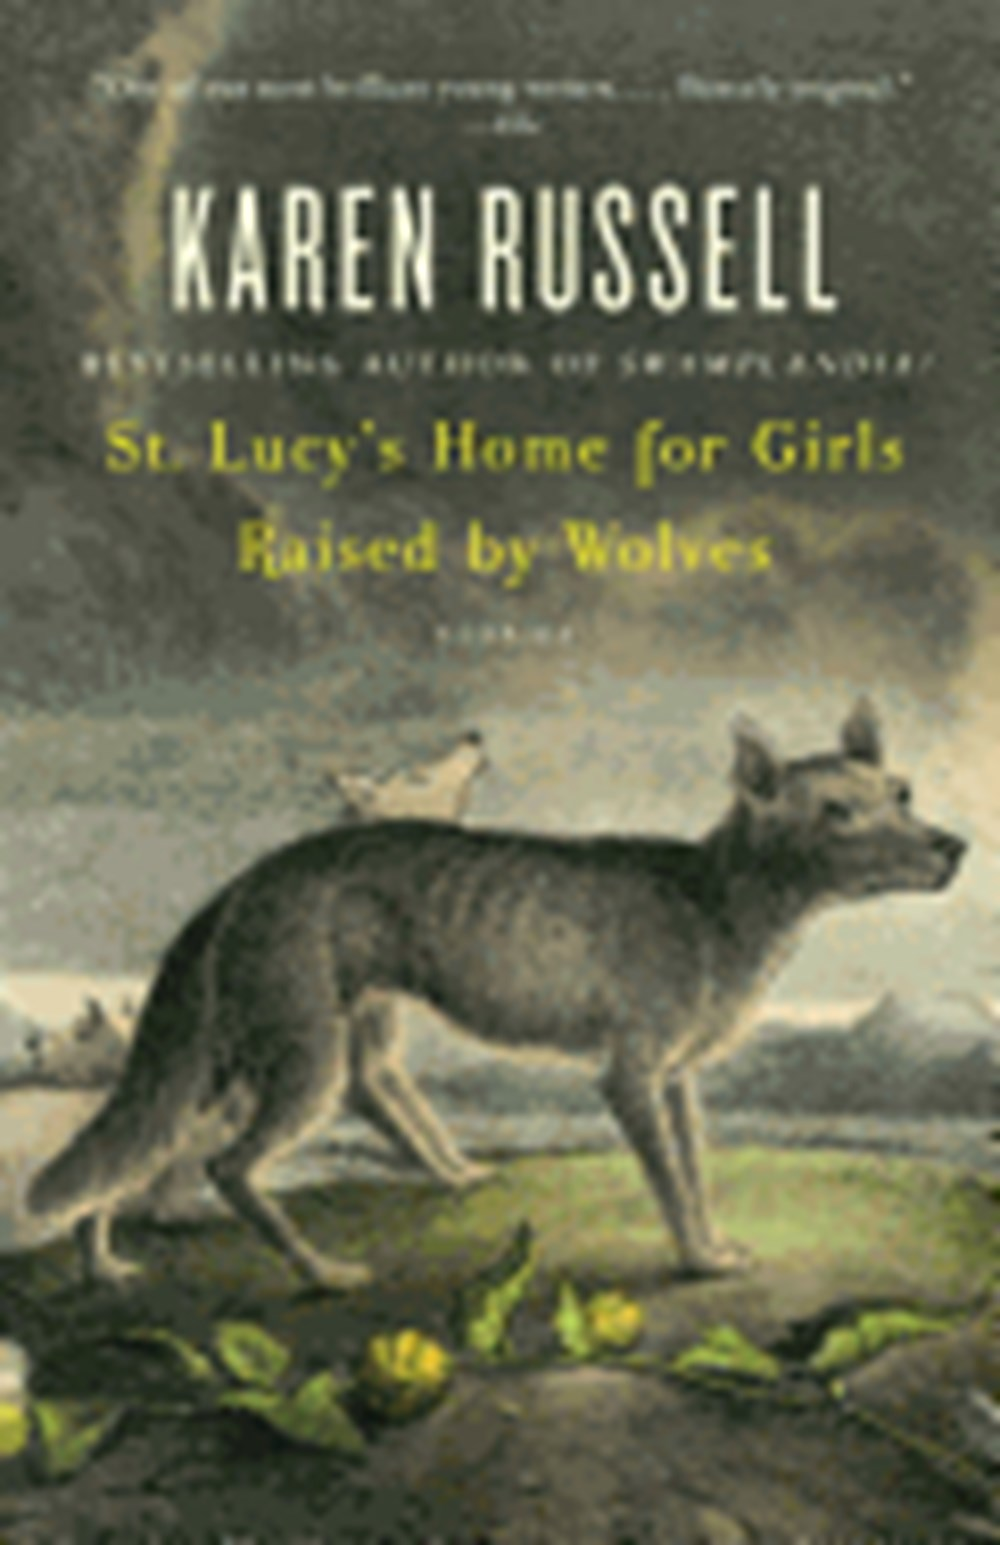 St. Lucy's Home for Girls Raised by Wolves